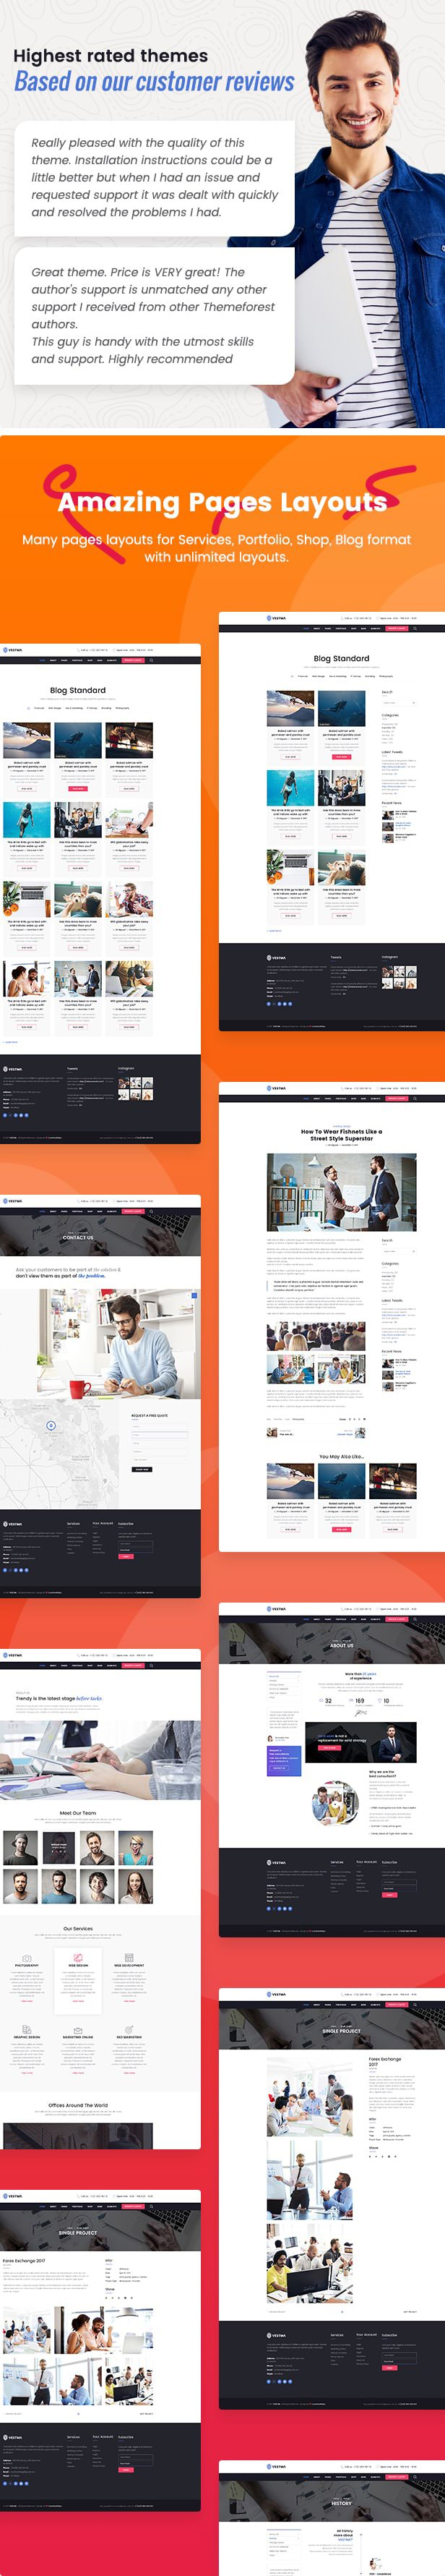 VestMa - Business, Consulting, Corporate WordPress Theme - 3